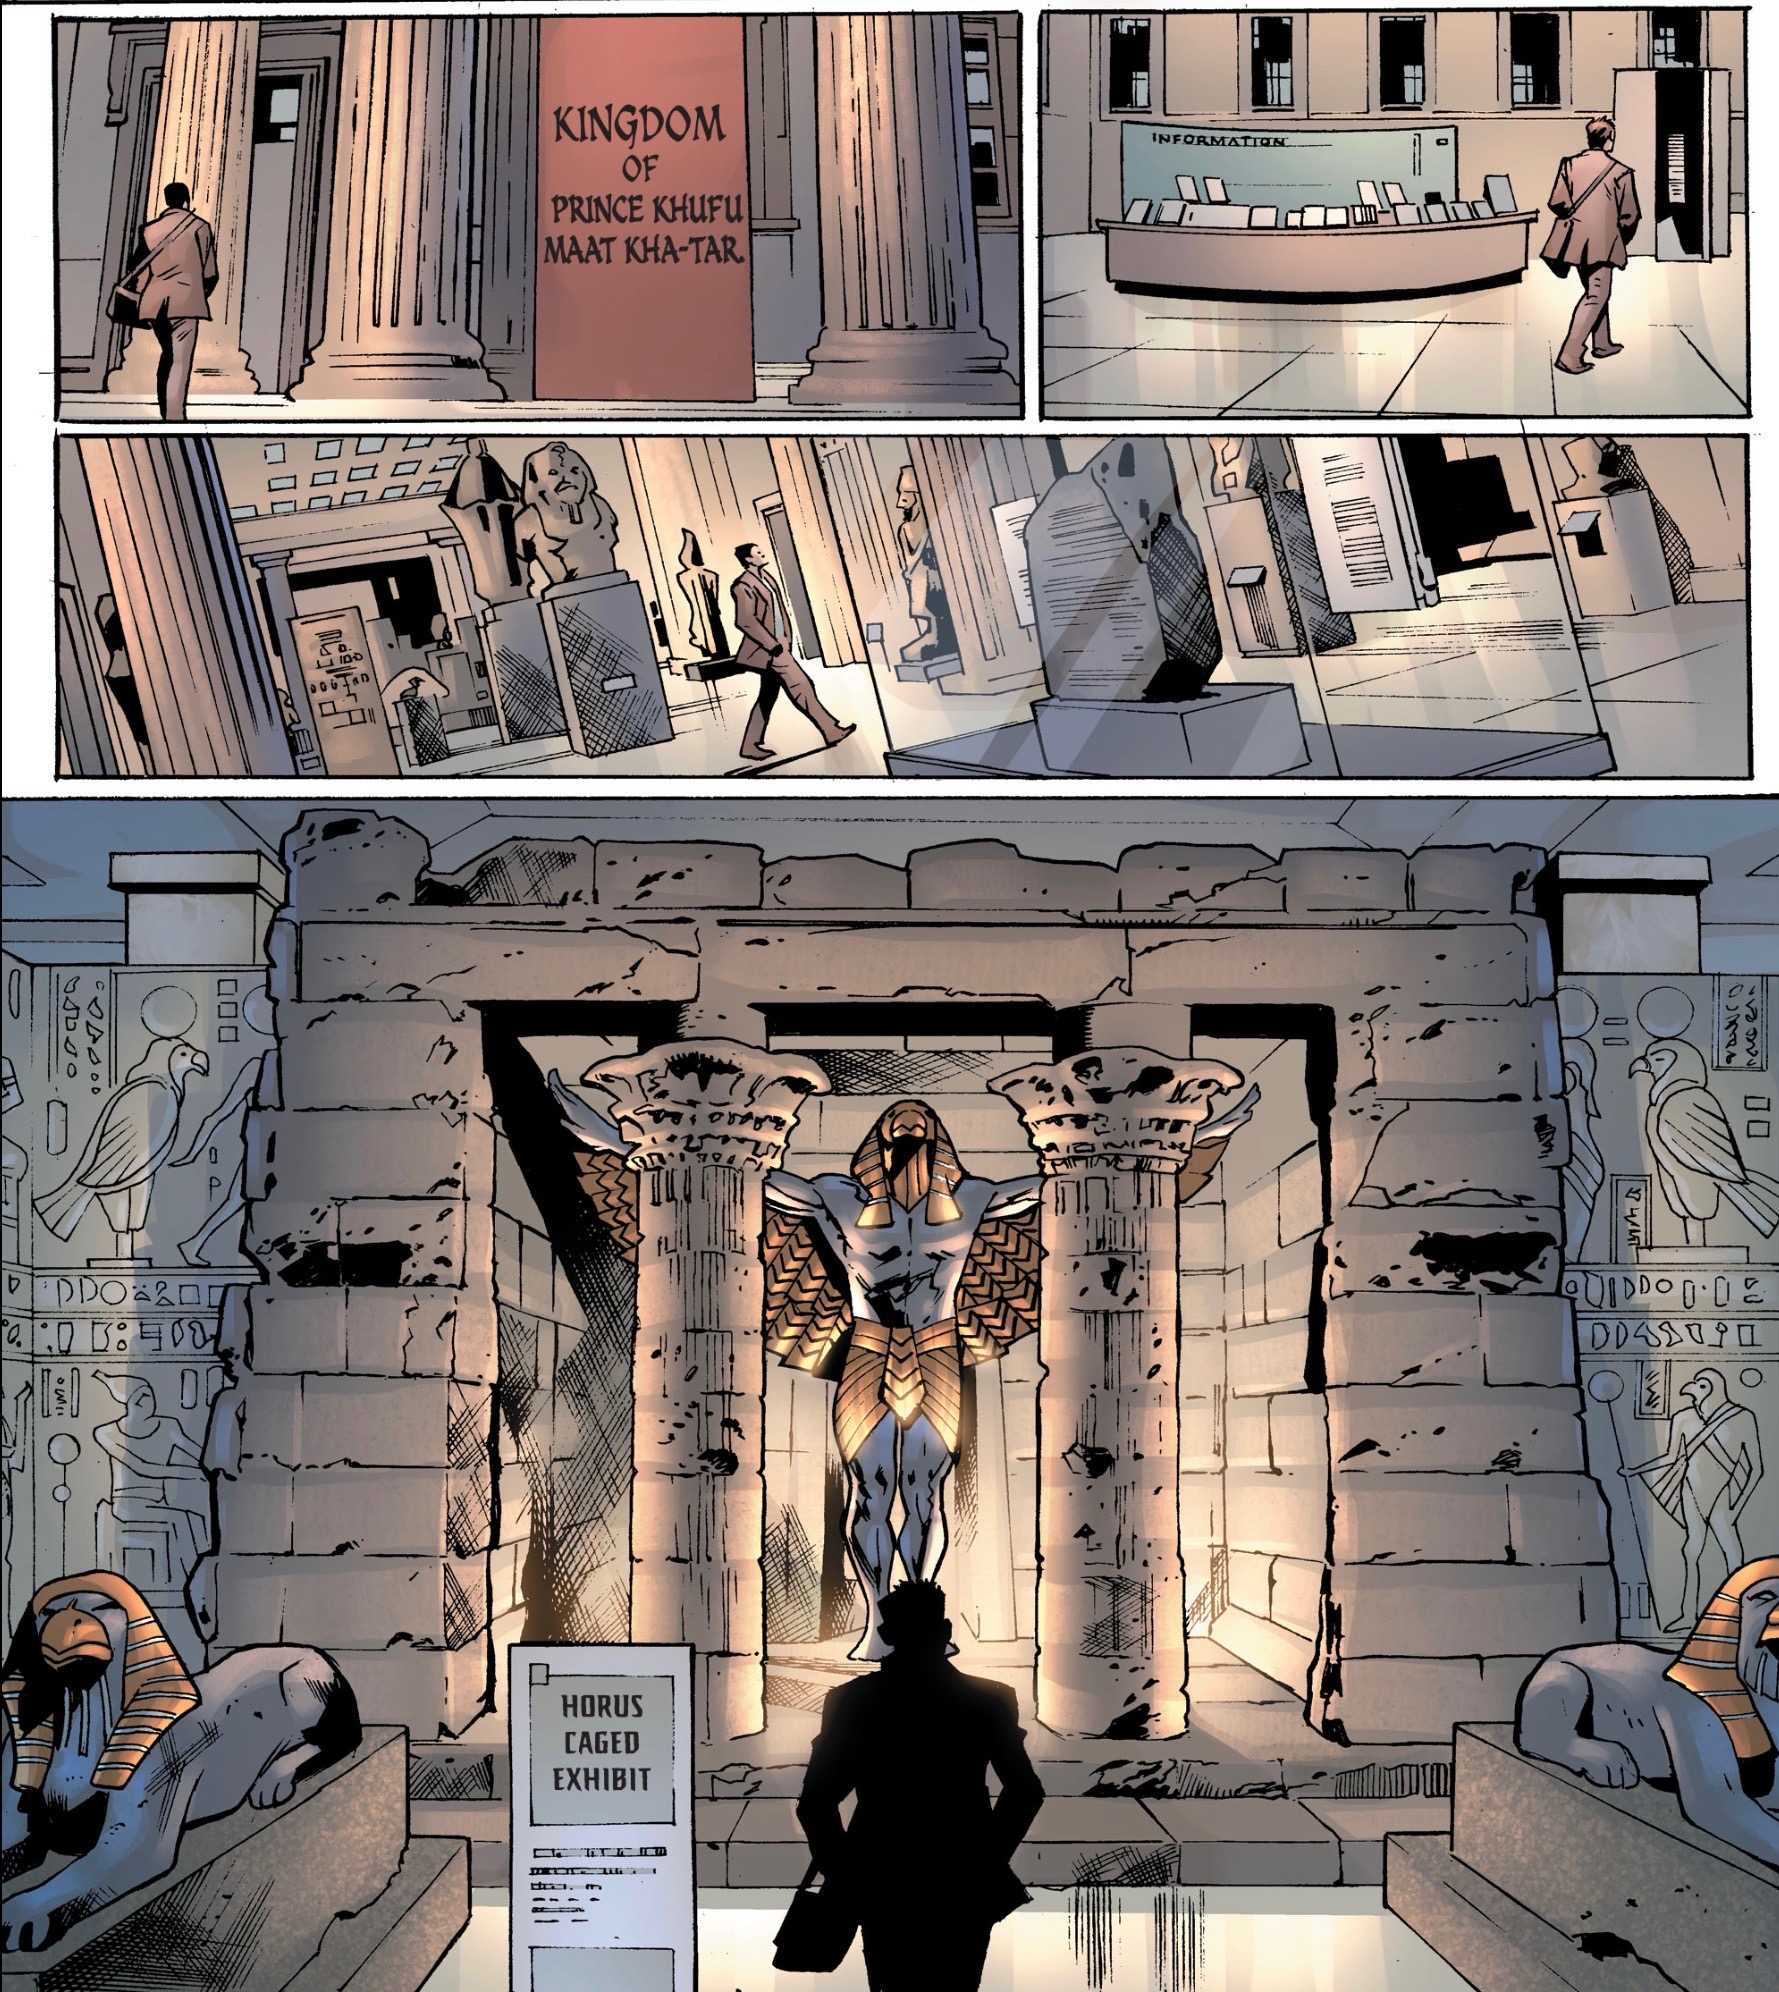 The significant of an epic quest can sometimes get lost if there's nothing present to ground a character, which Venditti and Hitch do well in this museum scene from  Hawkman #2.